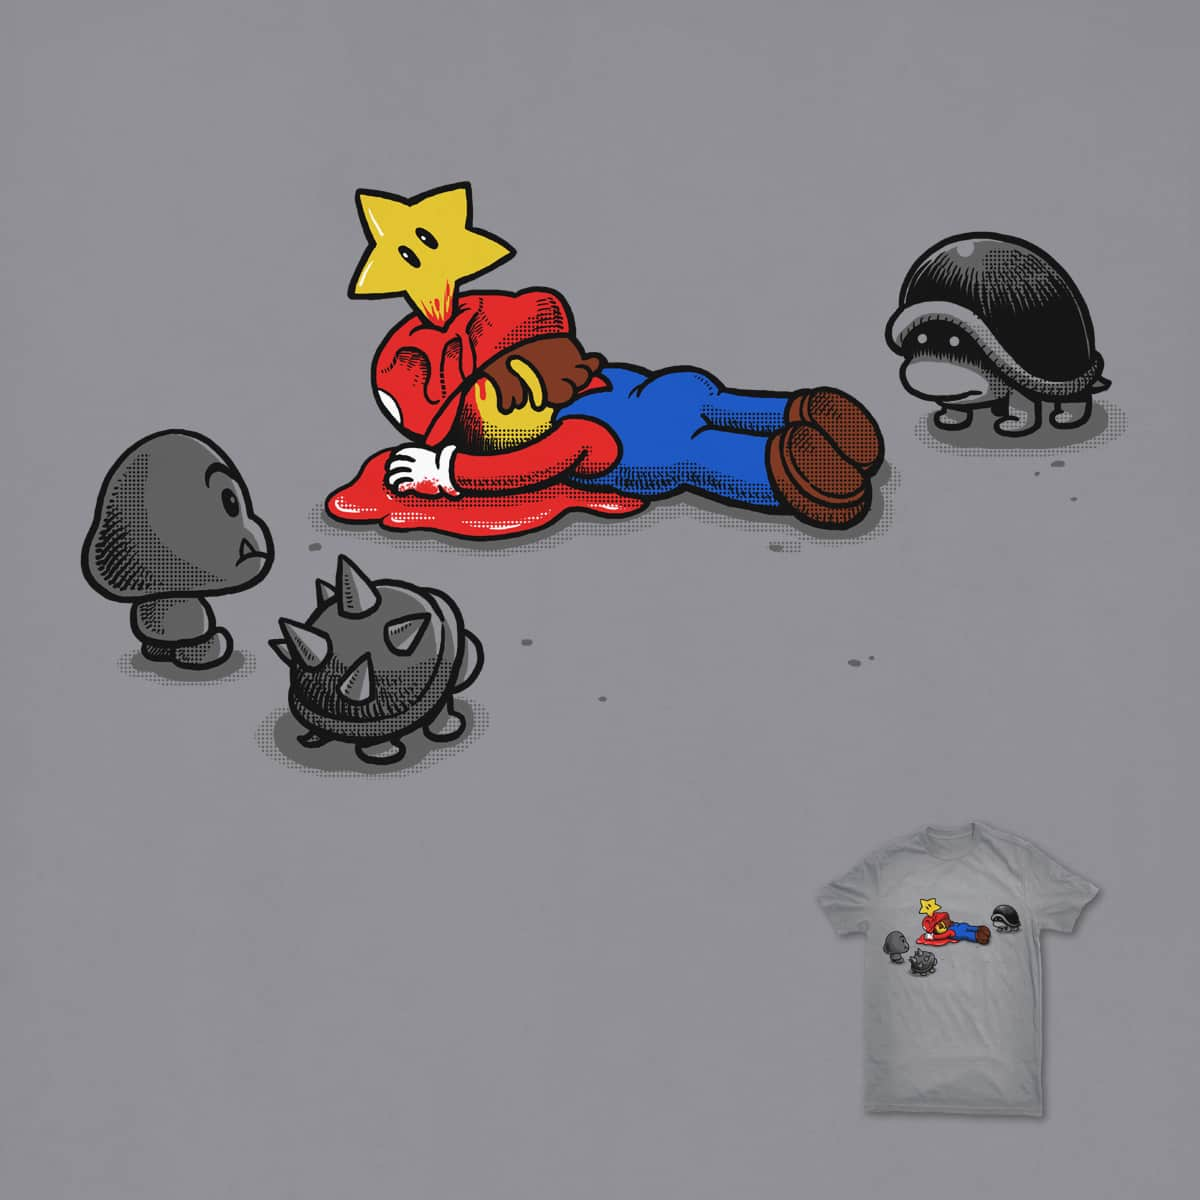 Killing Error by ben chen on Threadless